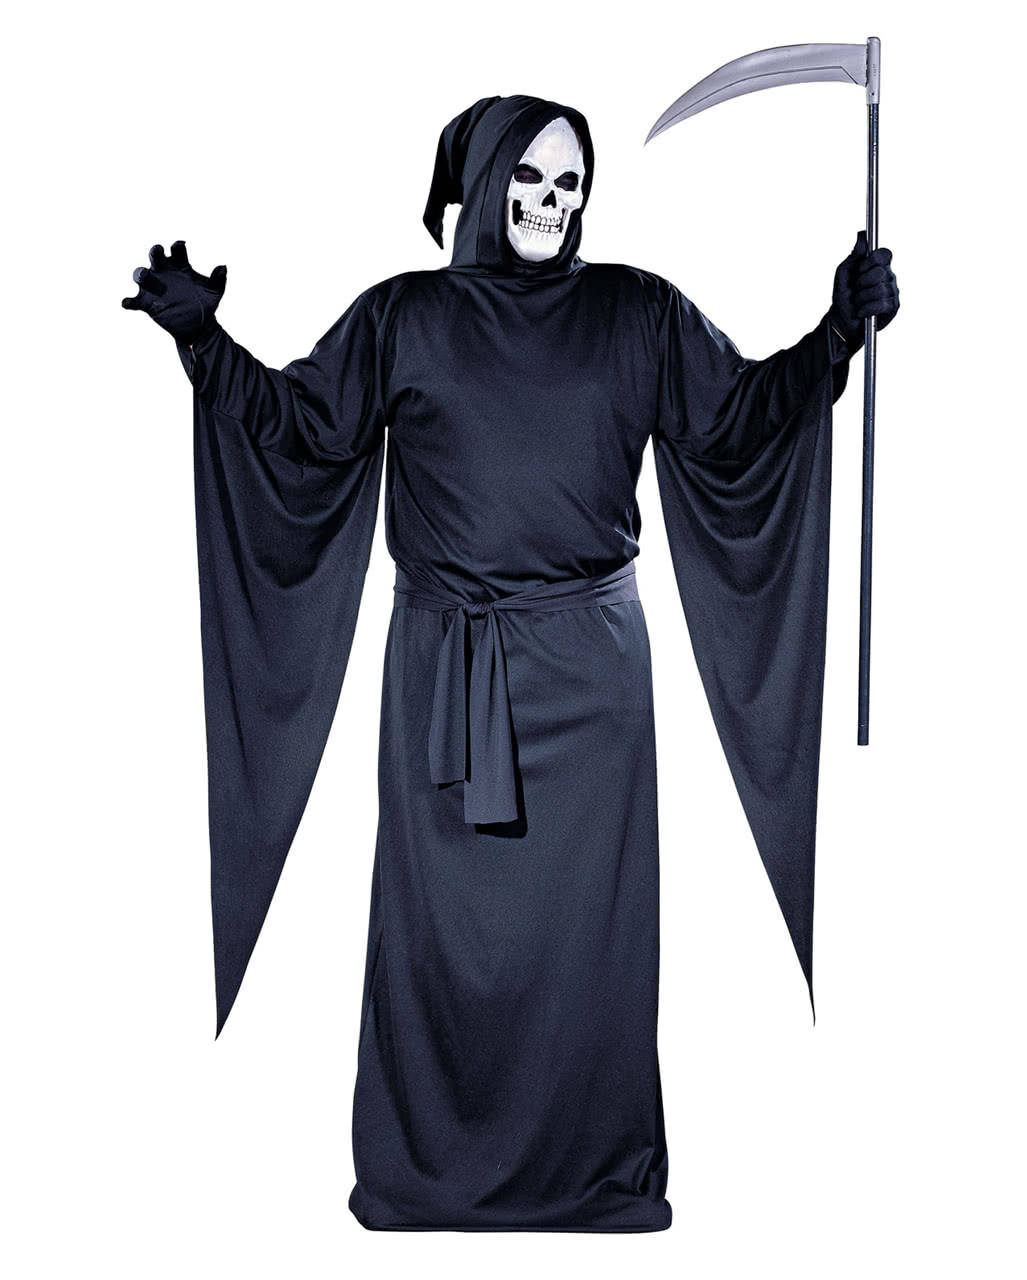 5b25509c4d Godfather Death   Grim Reaper Costume XL